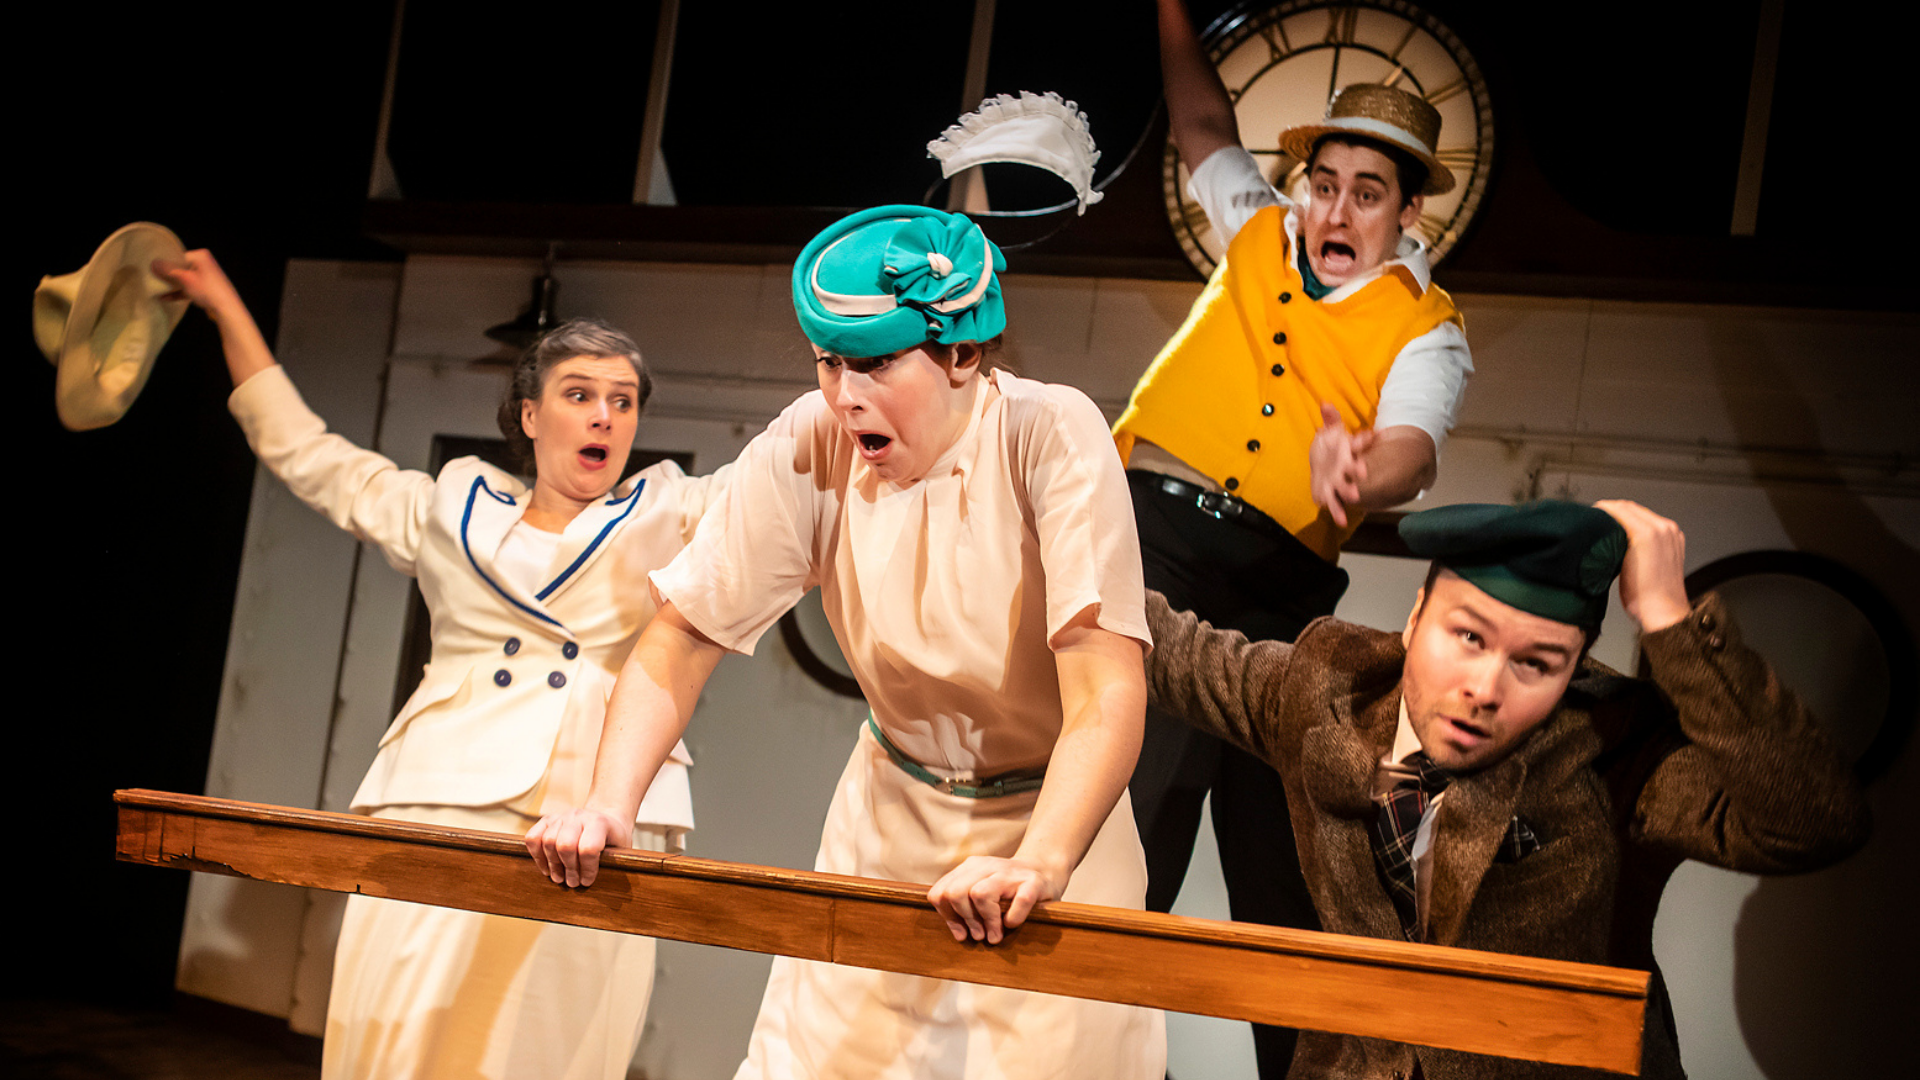 4 characters looking scared at the edge of a boat railing